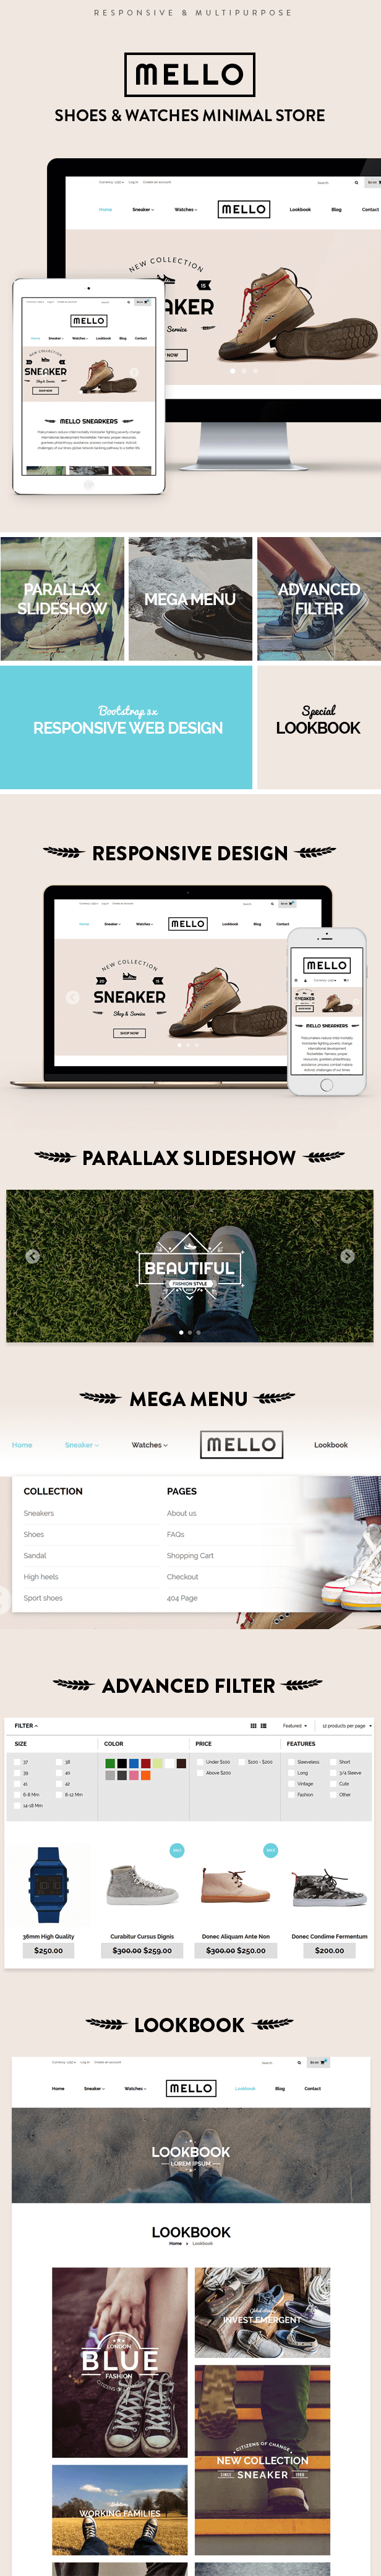 Shopify Theme - Mello